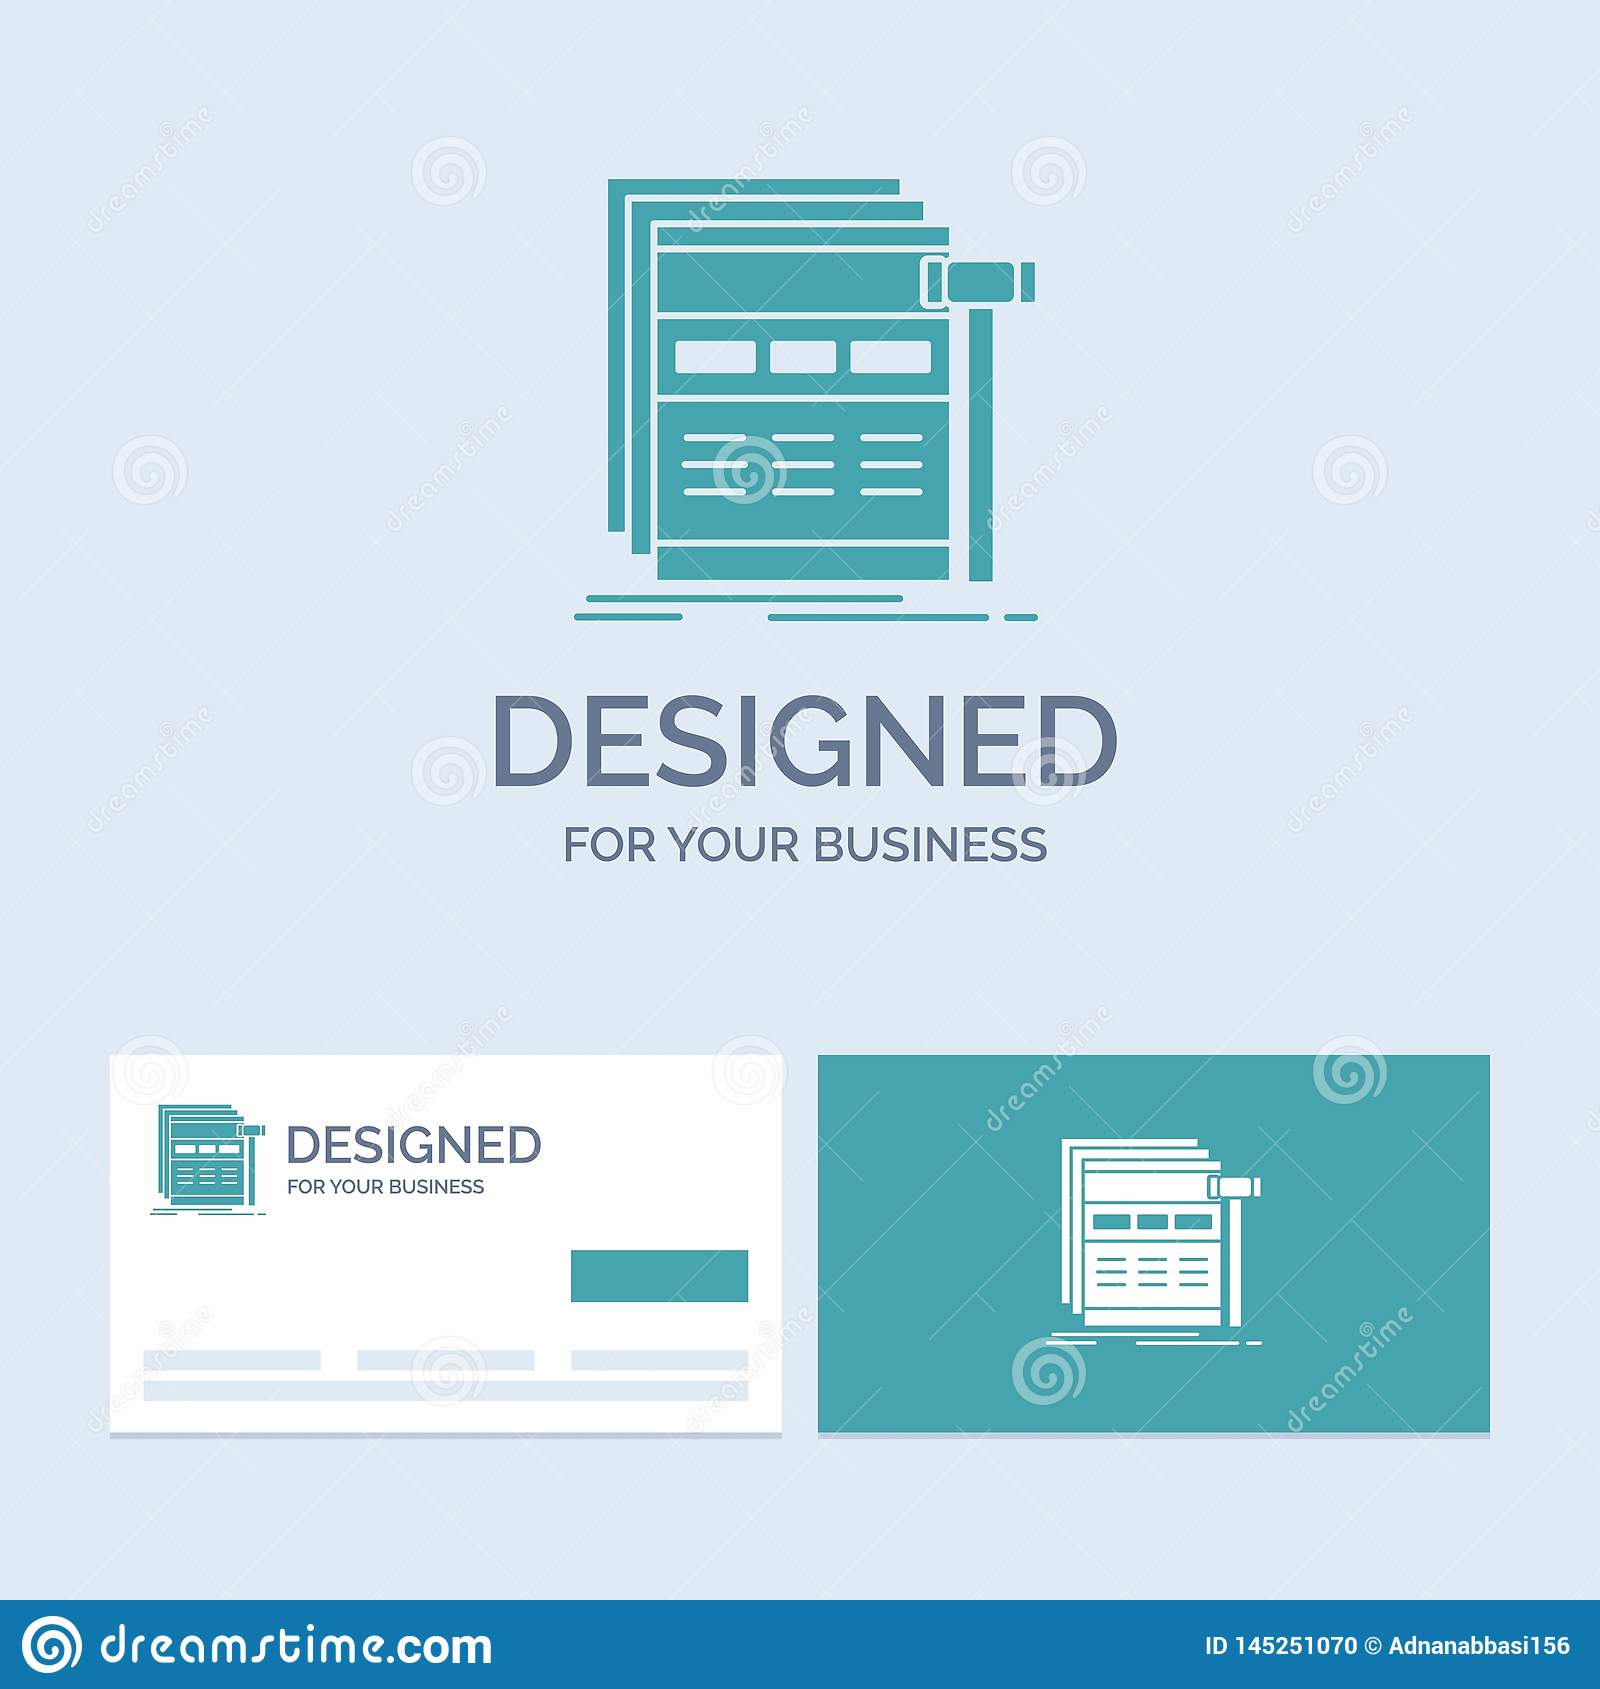 Internet, page, web, webpage, wireframe Business Logo Glyph Icon Symbol for your business. Turquoise Business Cards with Brand